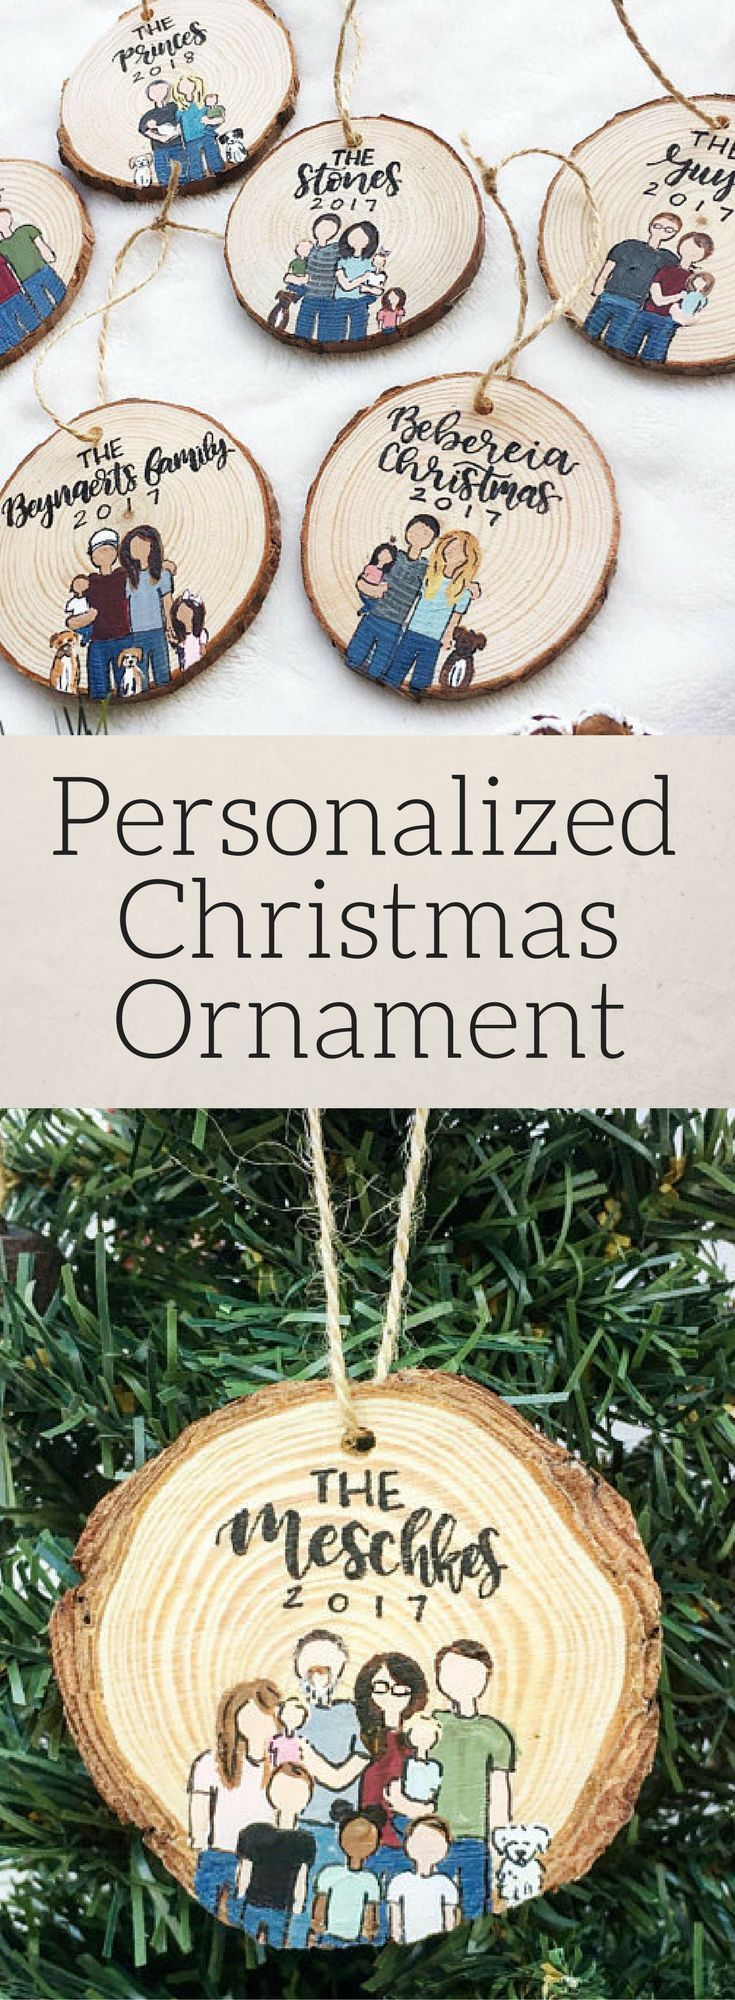 I'm so buying one of these custom Christmas ornaments!!!! Love that it has rustic Christmas charm..,. but also a little funky!  LOVE! Family Ornament, Custom Ornament, Personalized Christmas Gift, Christmas Ornament, Our First Christmas, Housewarming Gift, Christmas Gift for Her, Rustic Christmas #affiliate